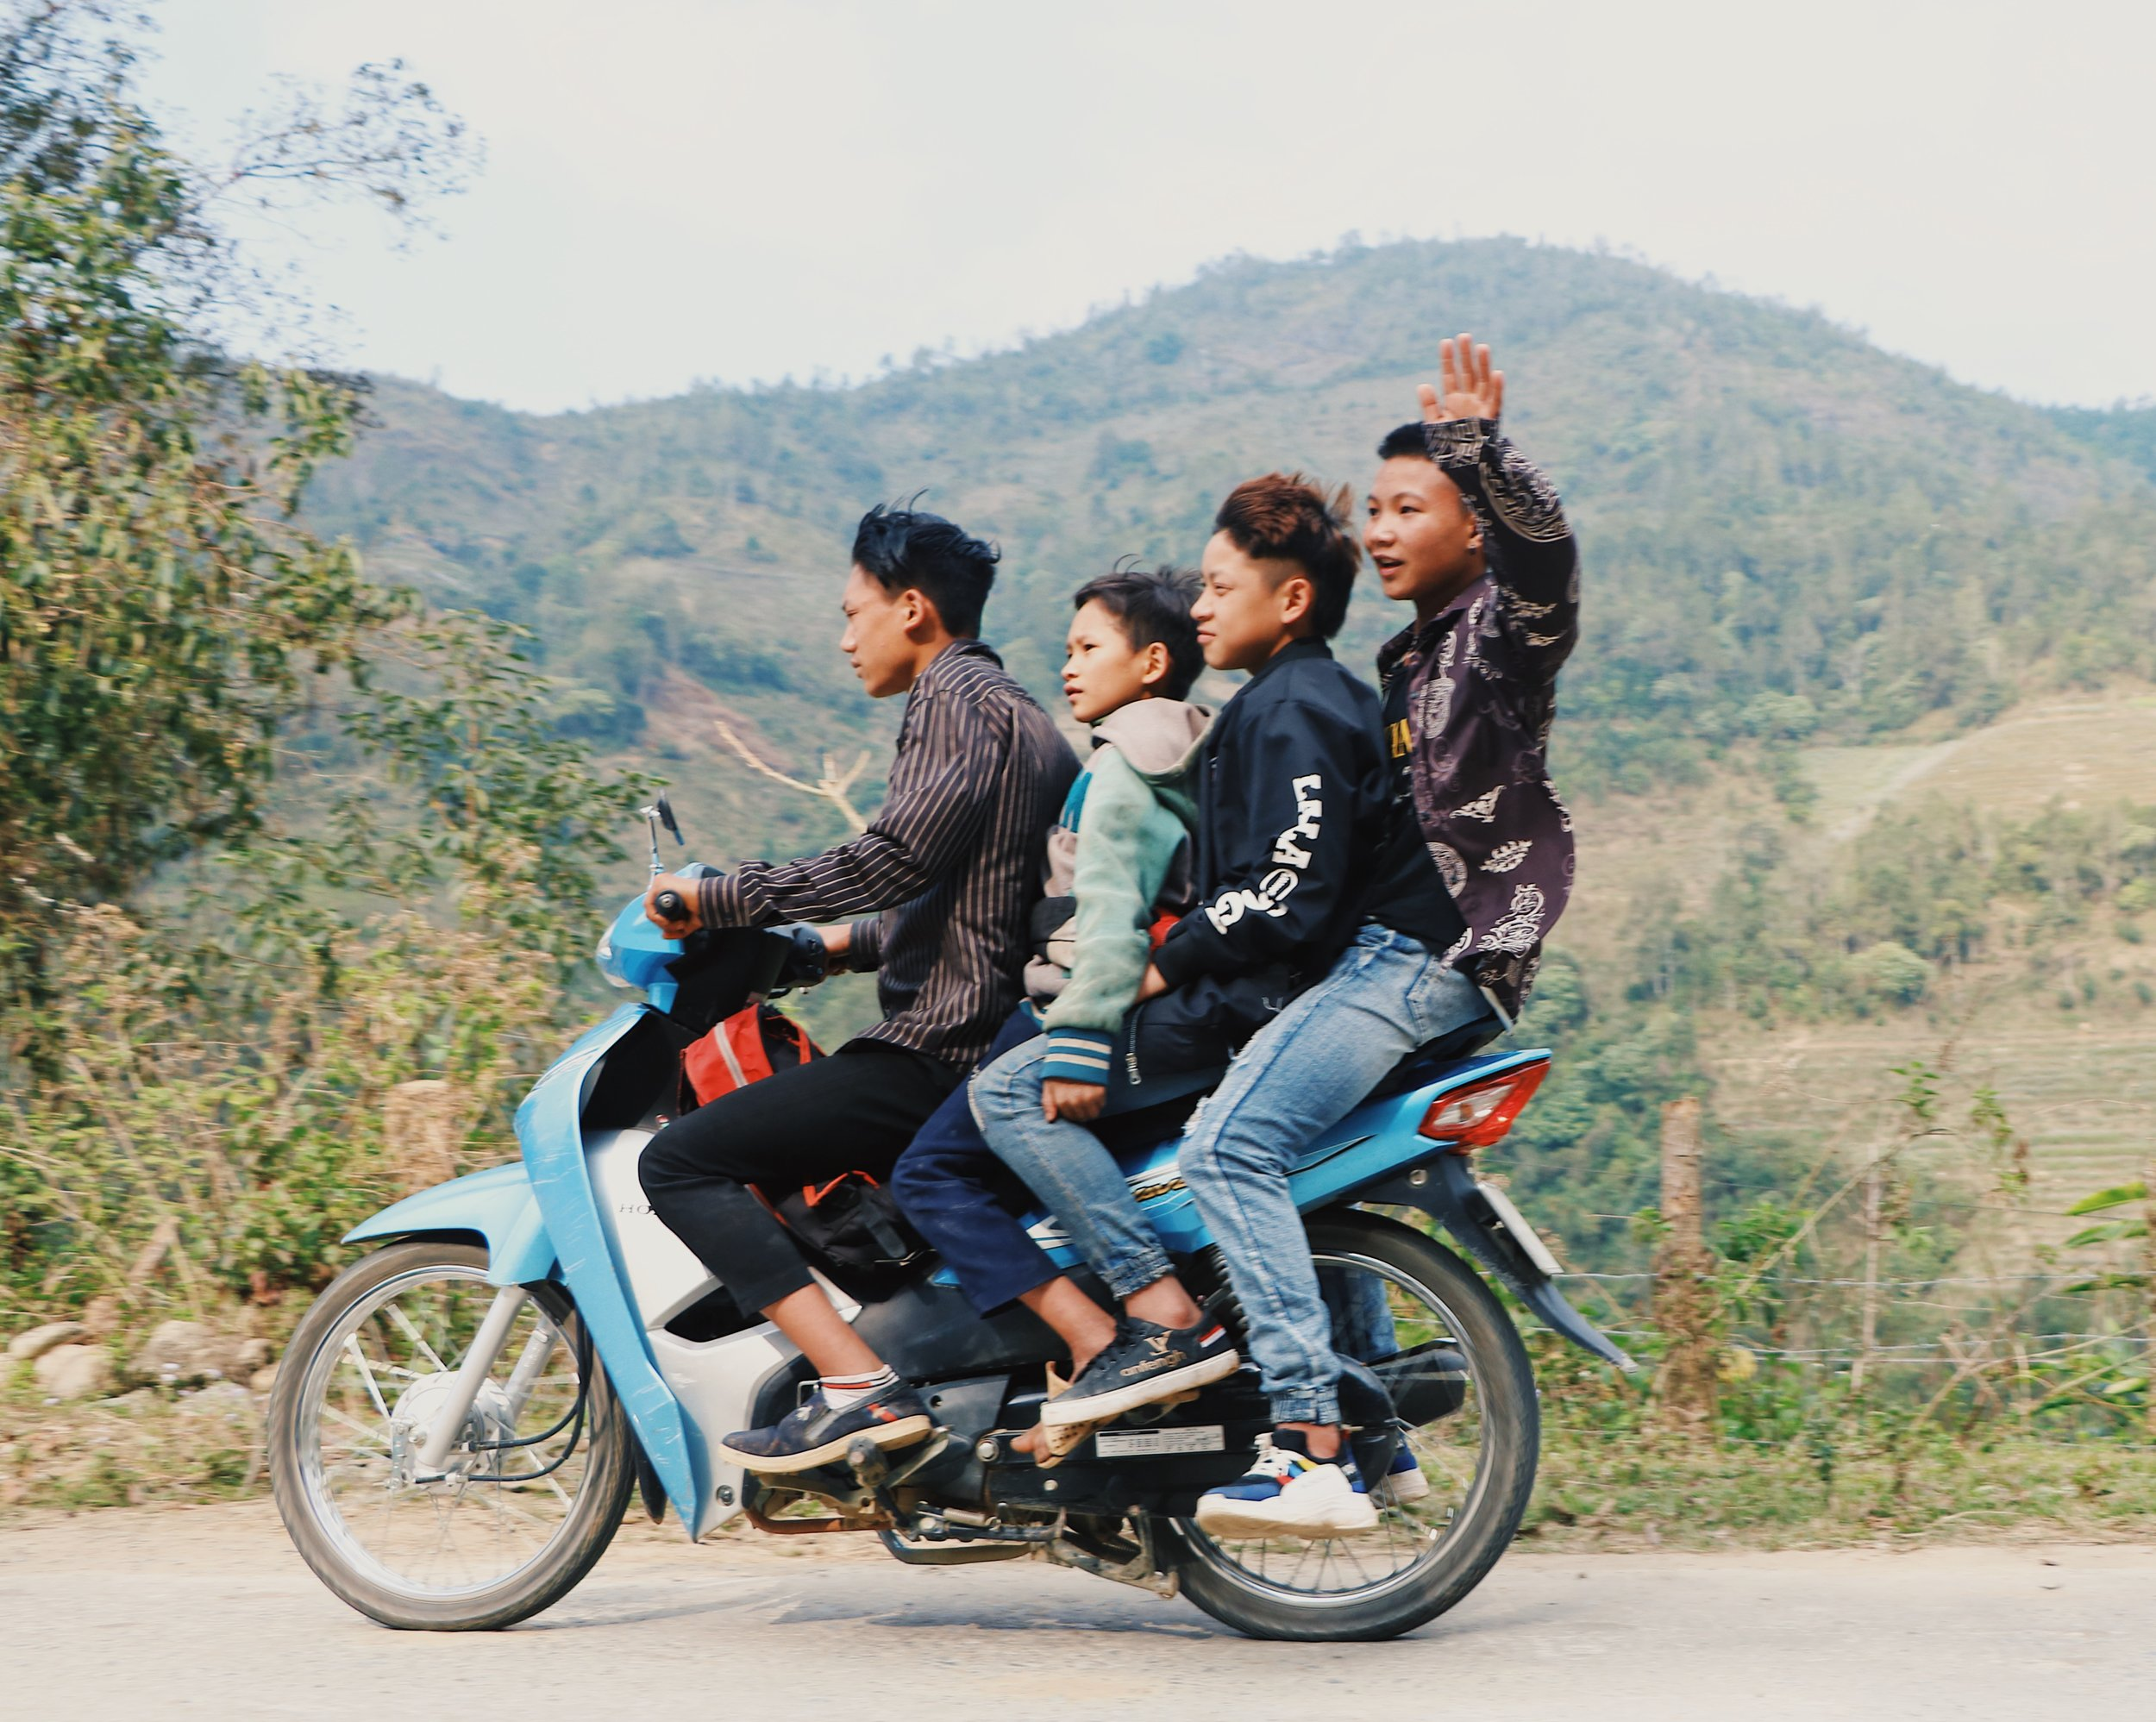 A typical sight throughout Vietnam, these motor bikes can carry anywhere from one to six people.